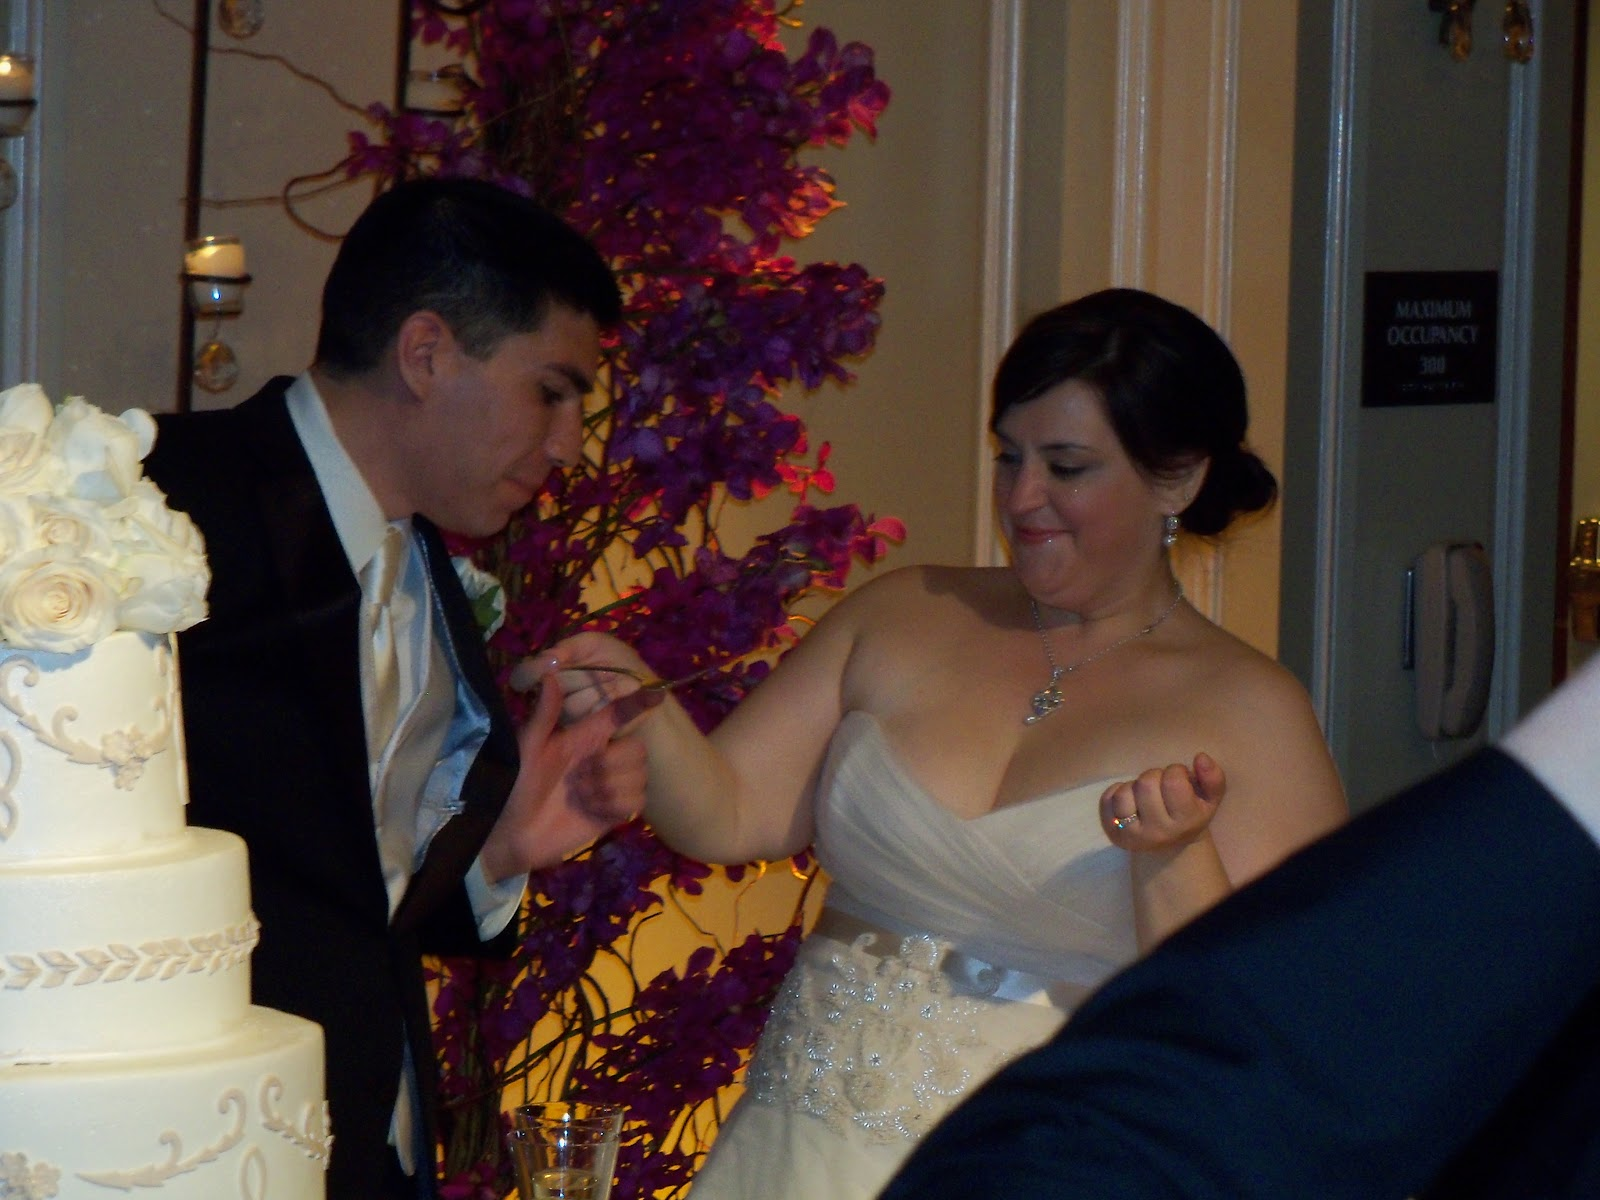 Megan Neal and Mark Suarez wedding - 100_8392.JPG